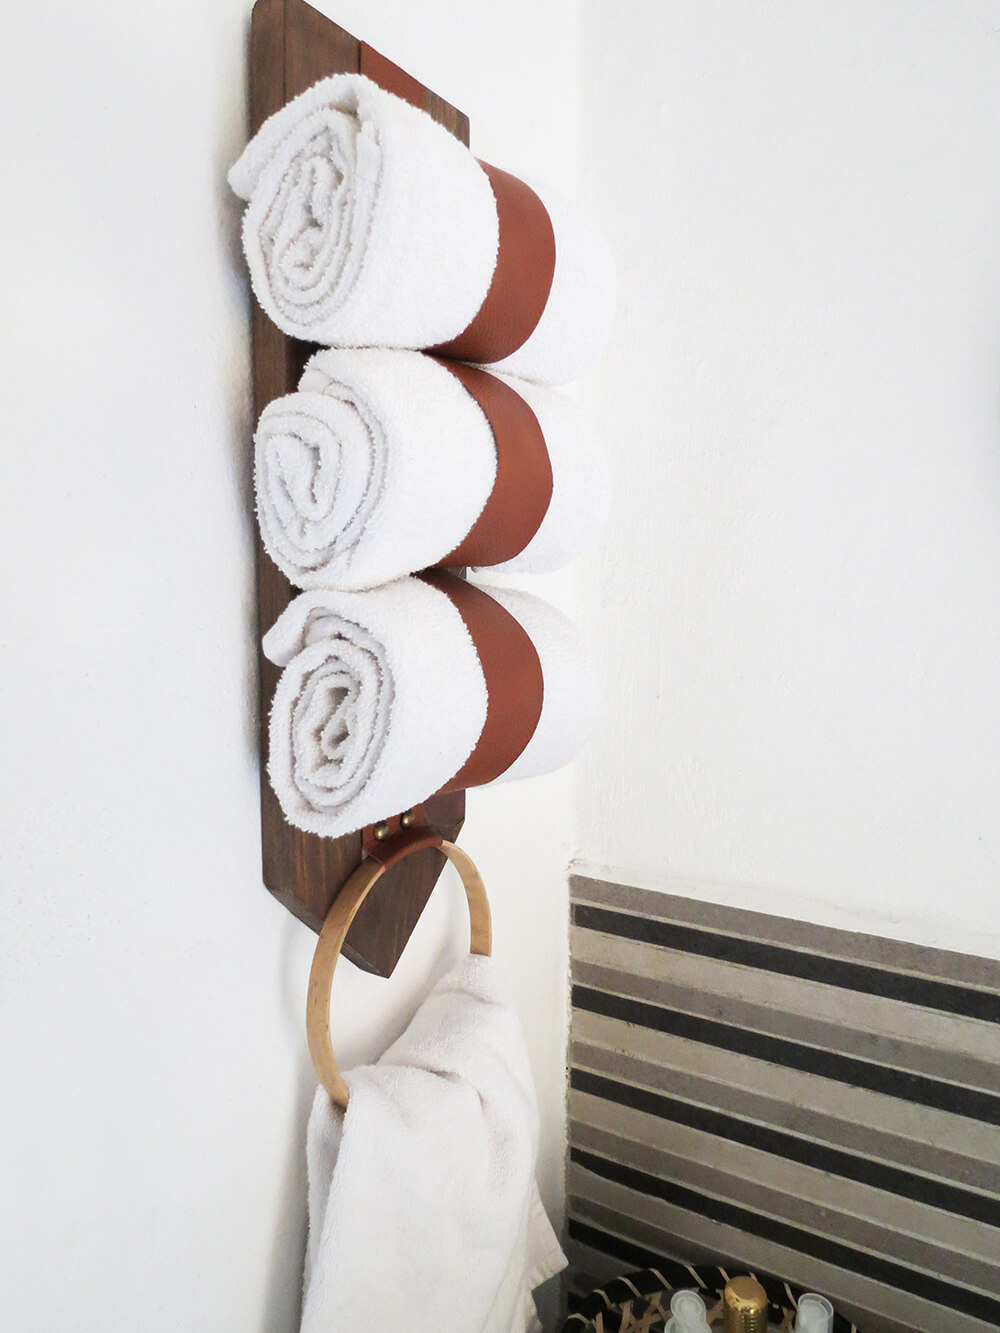 View of diy towel storage holder on the wall from the side